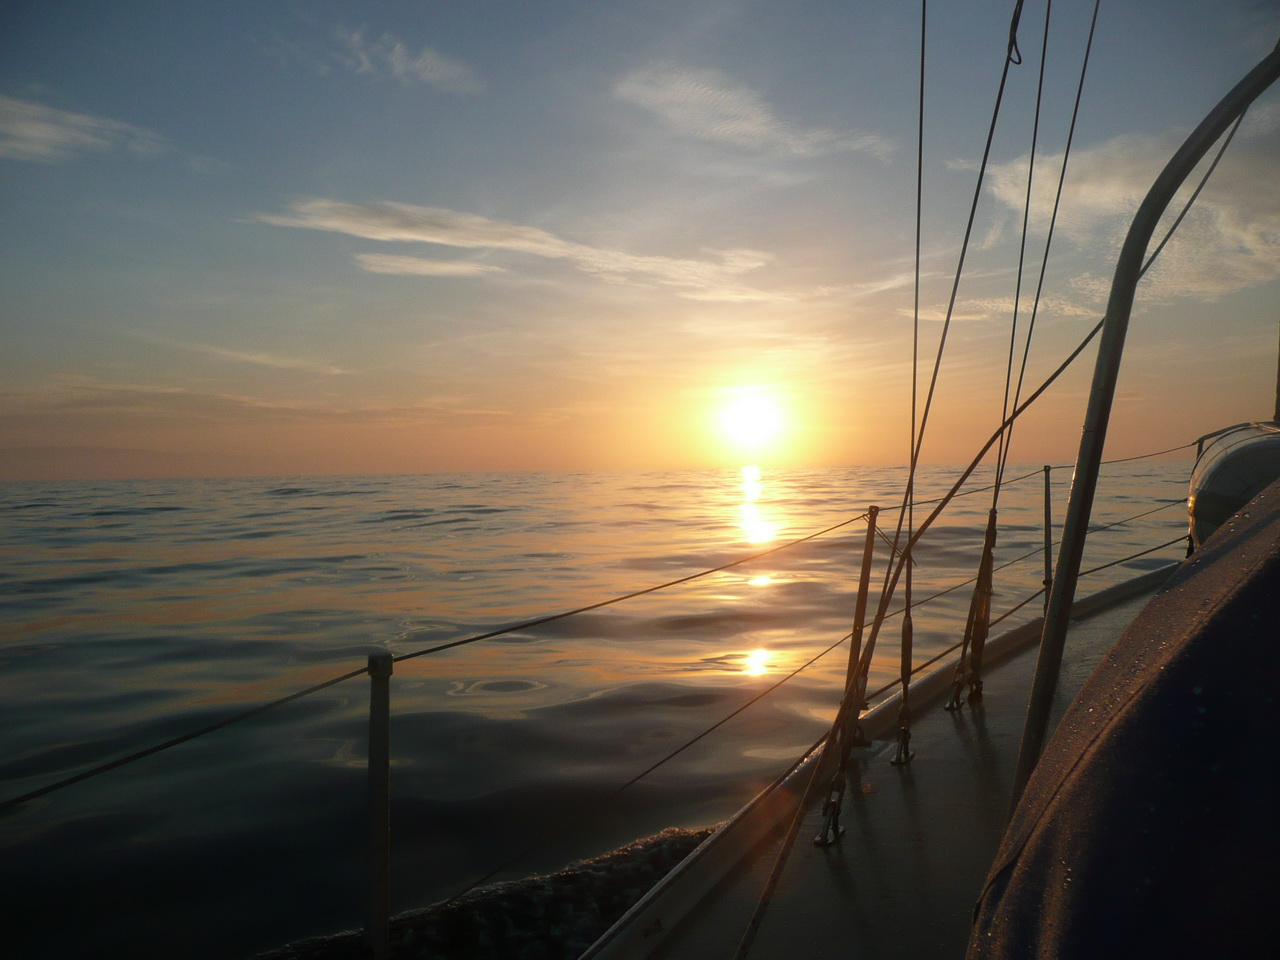 Sunset on passage